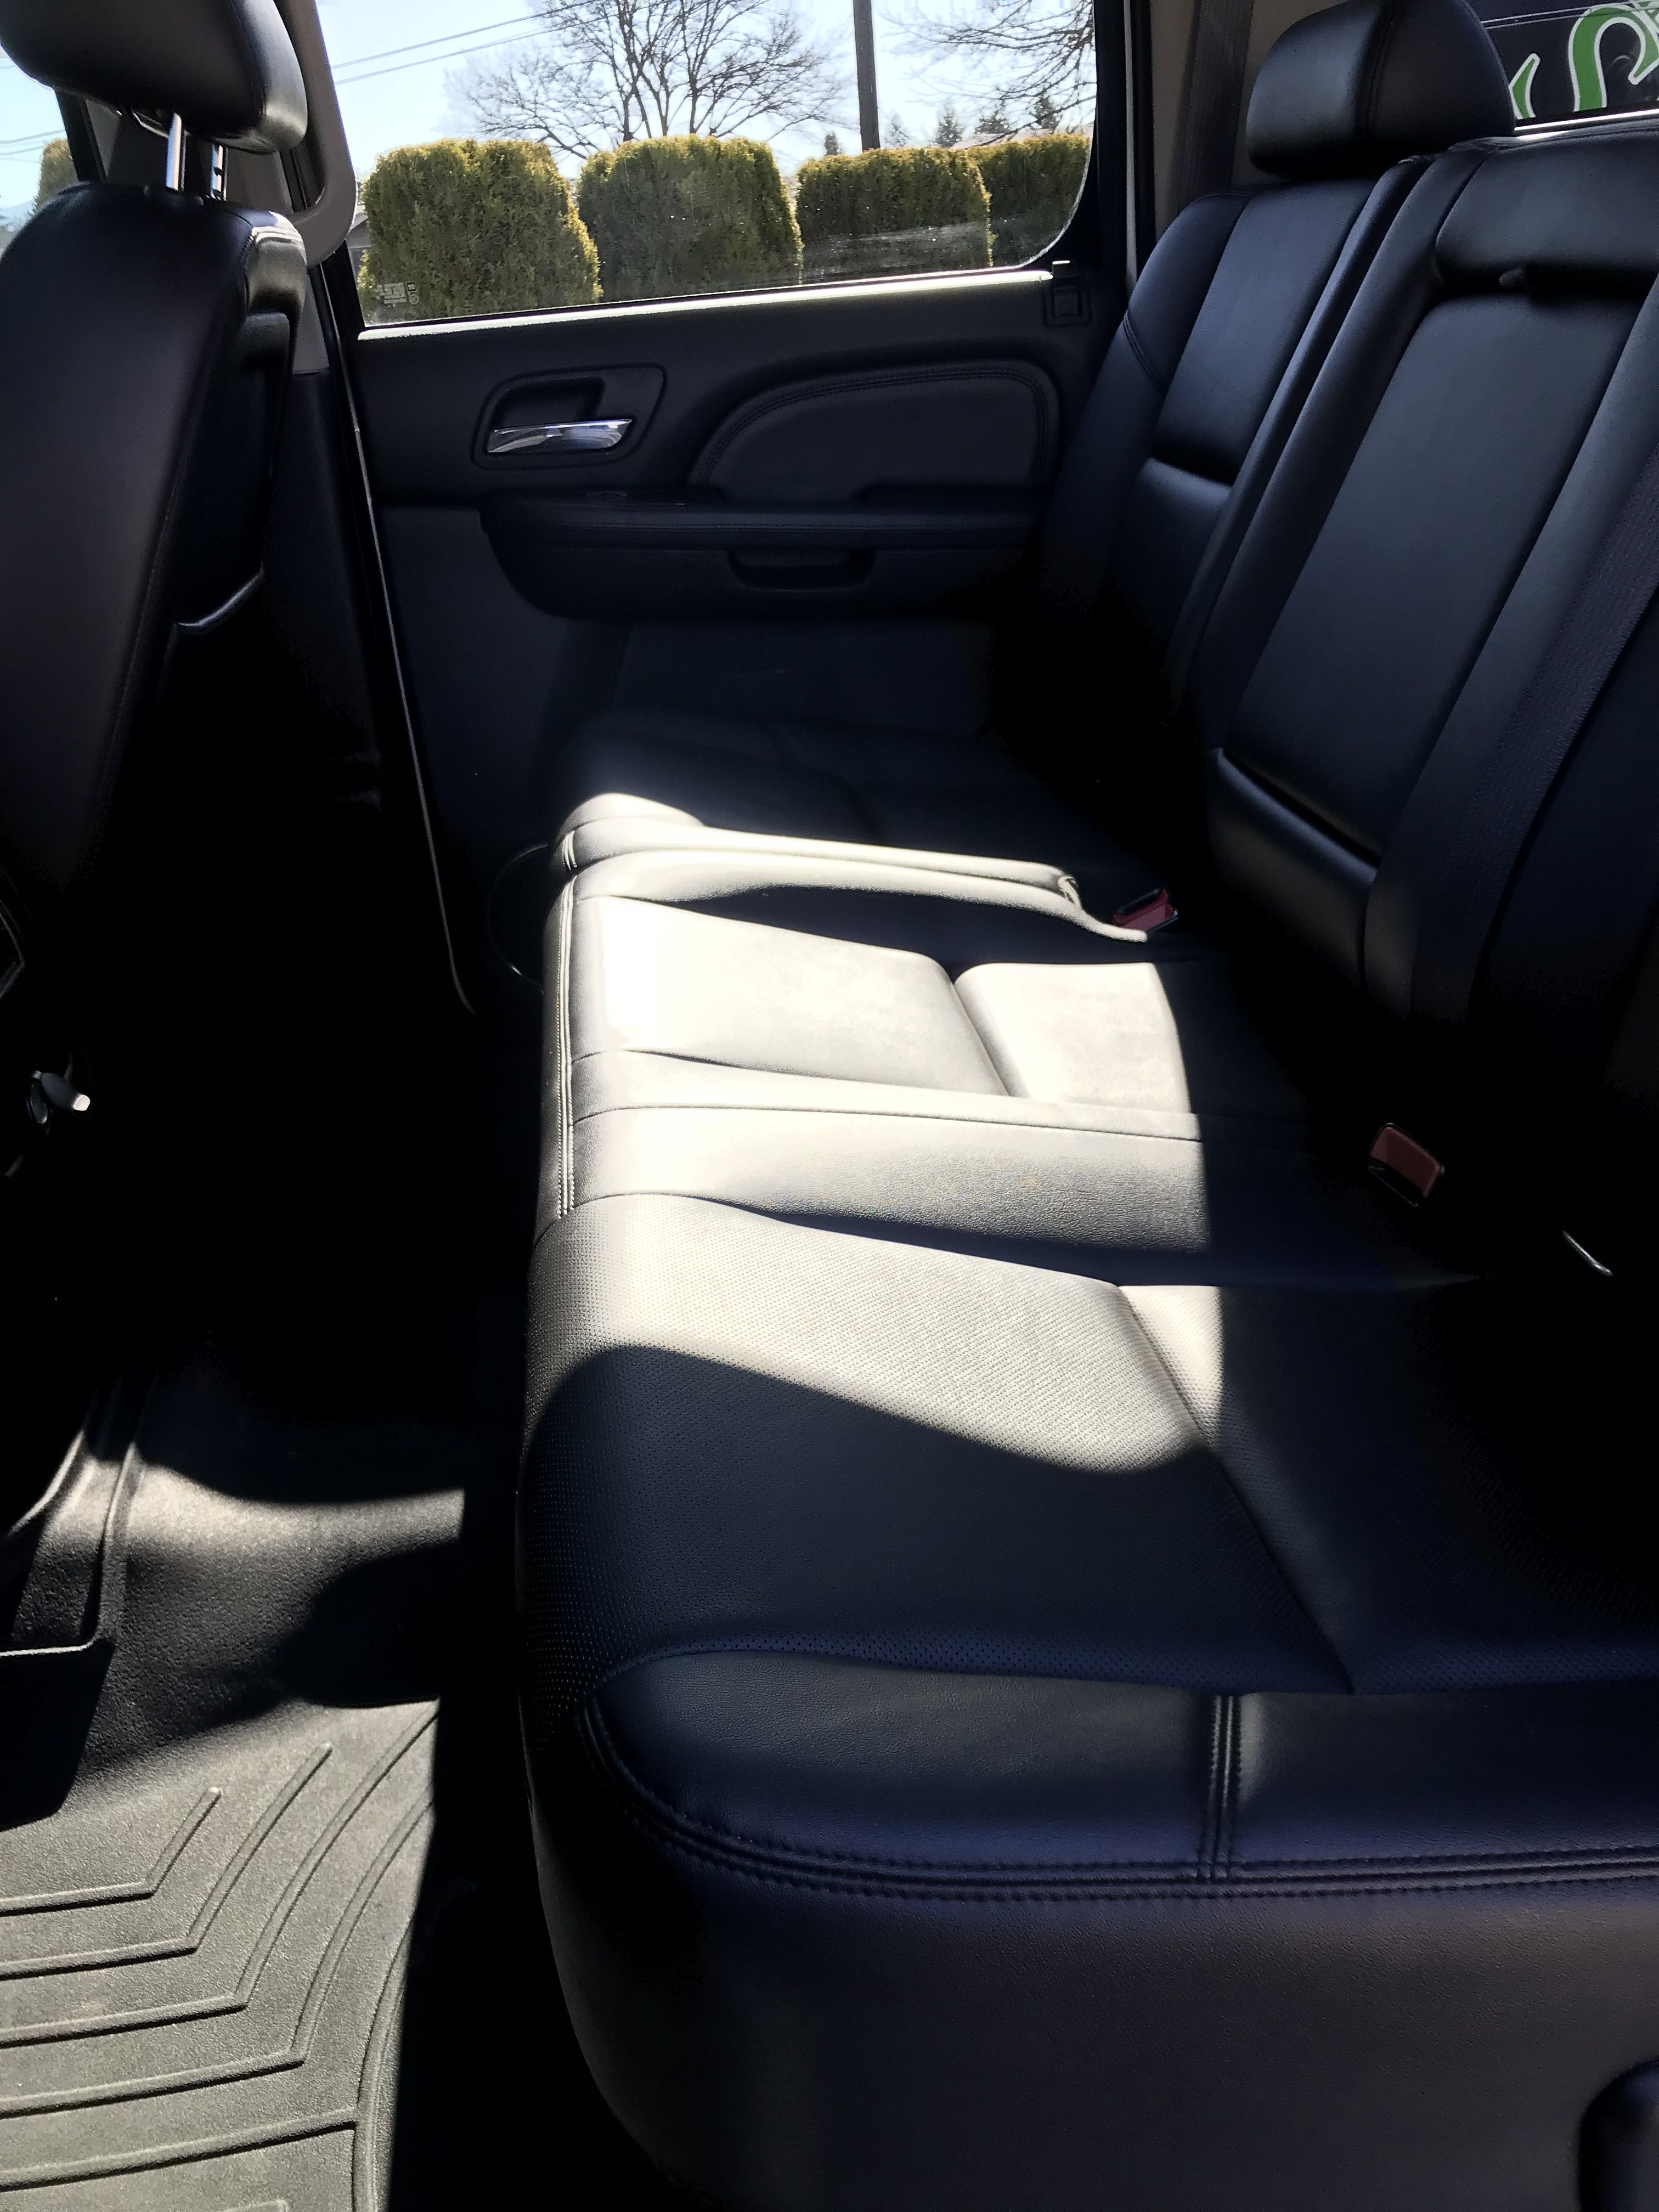 This truck is lookin' freaking spotless! We did a full interior and on